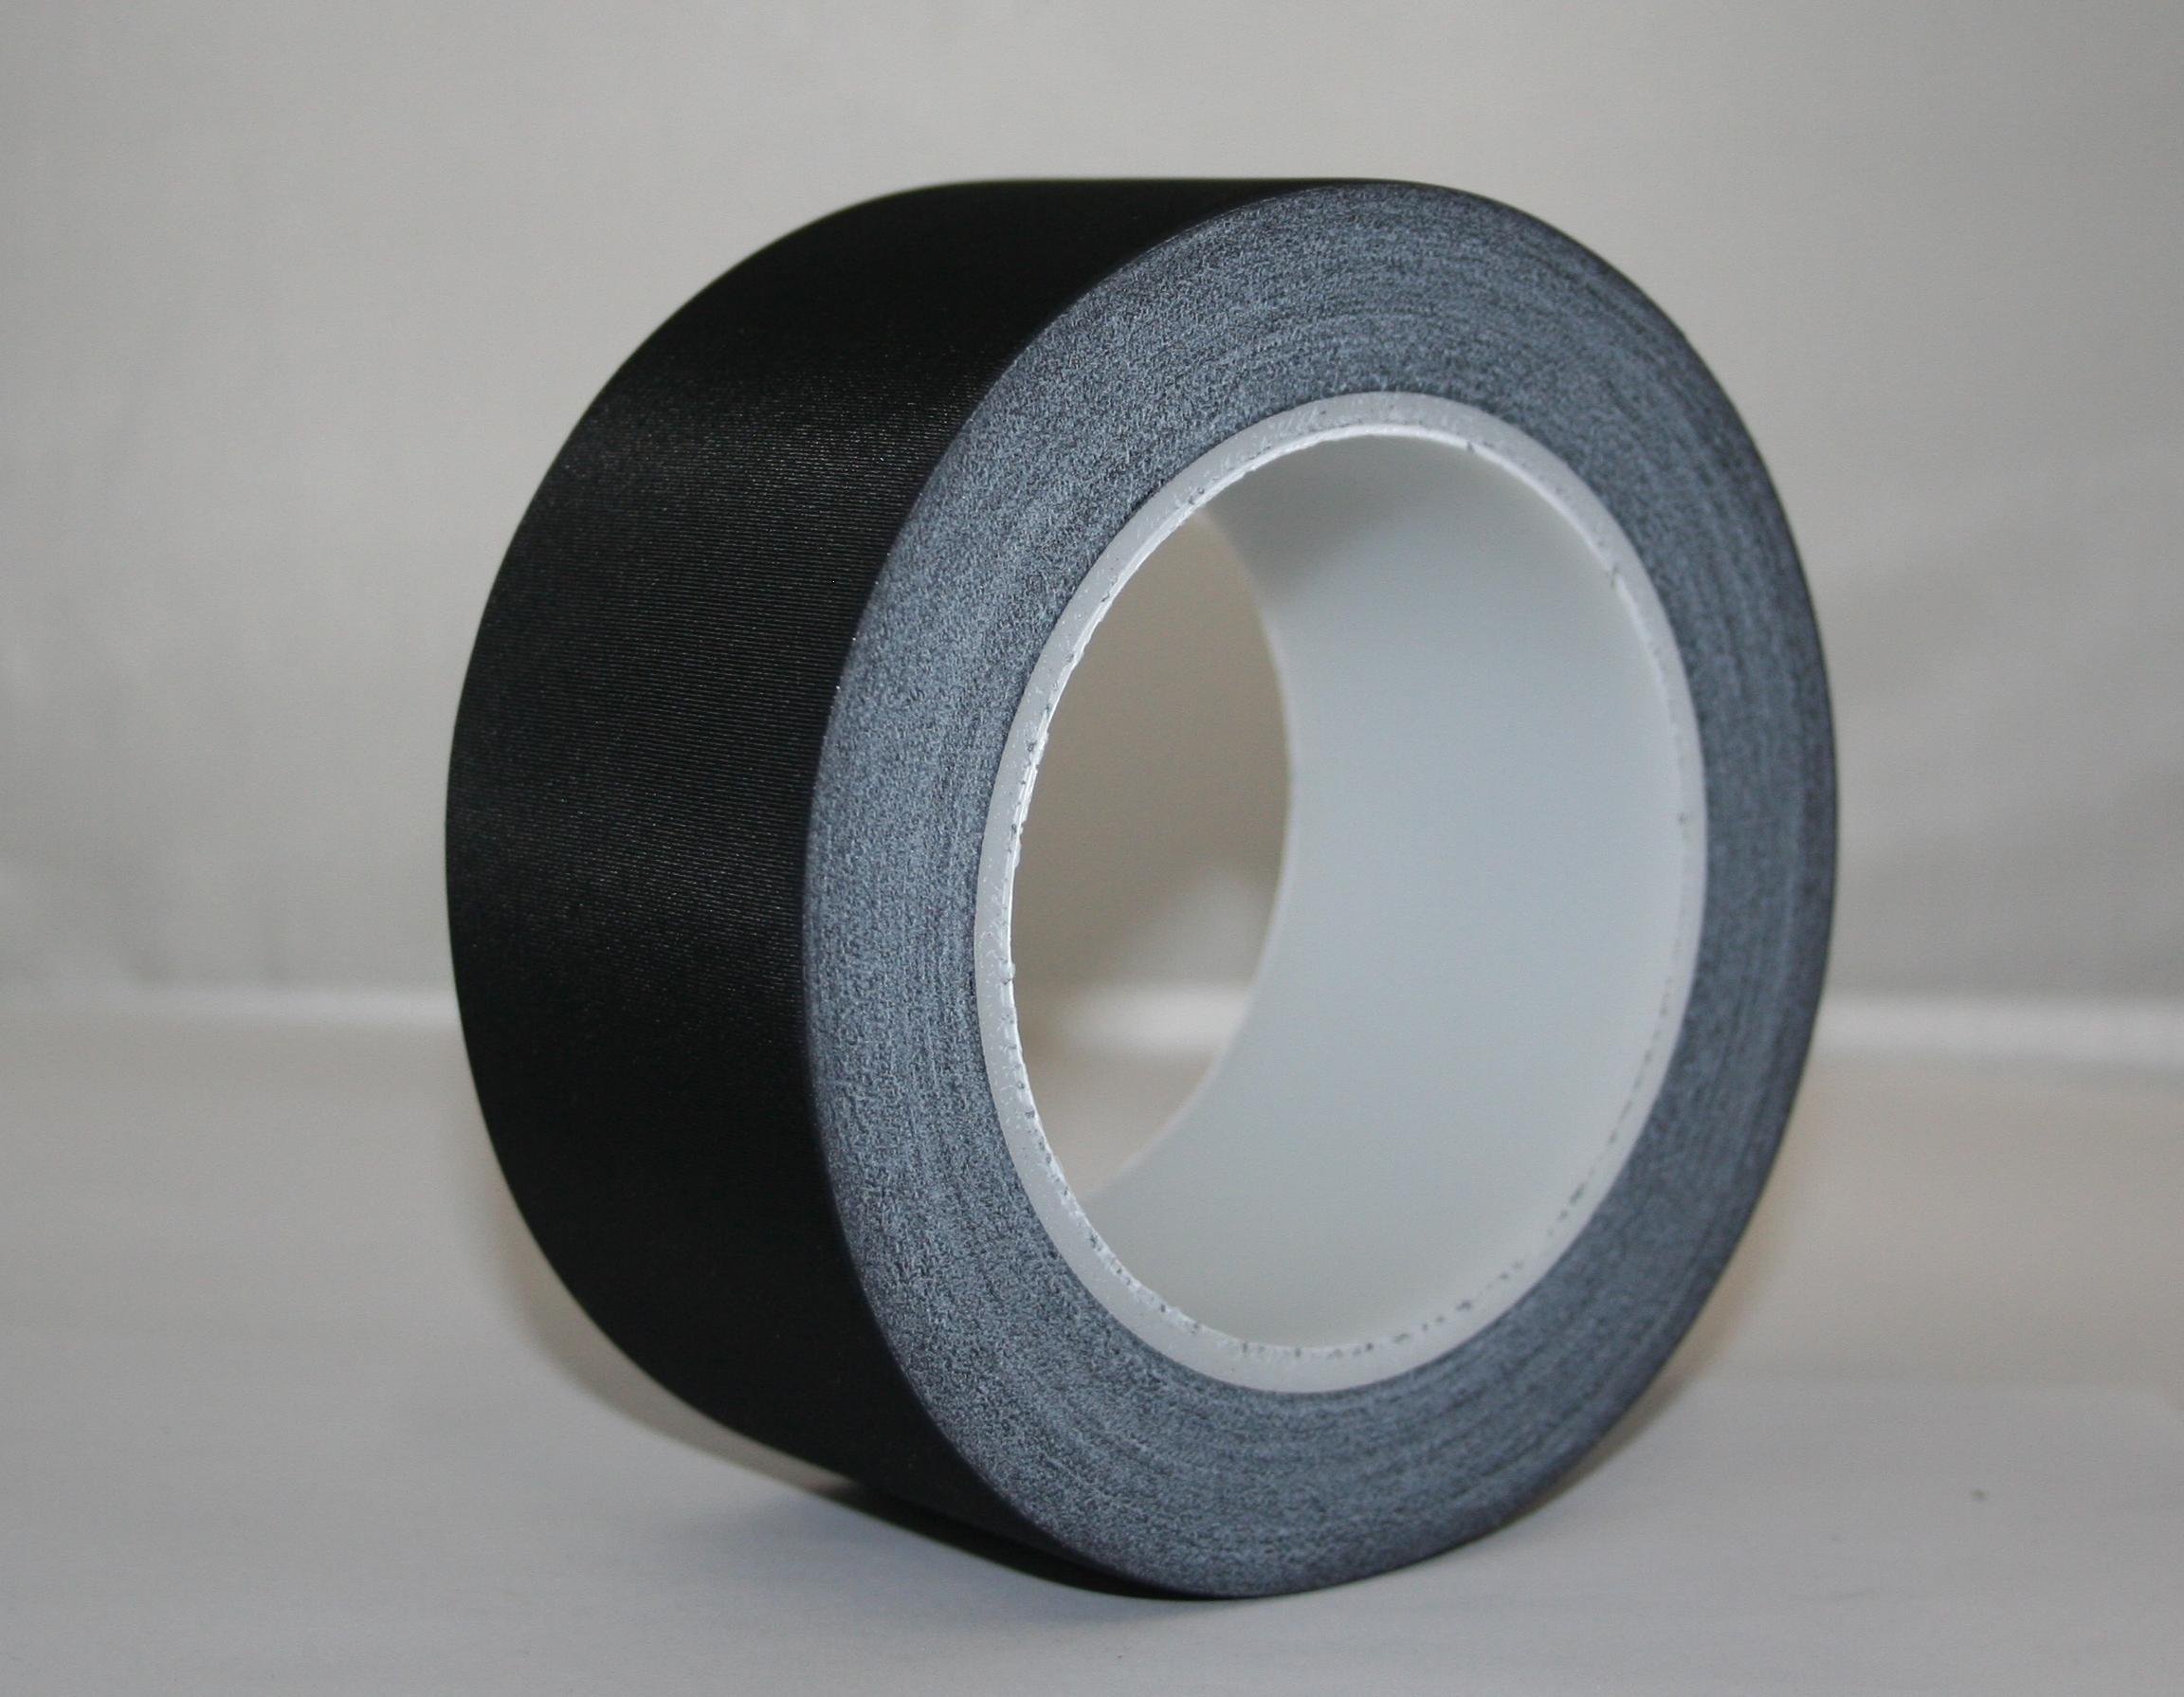 #14179 Acetate Cloth Tape